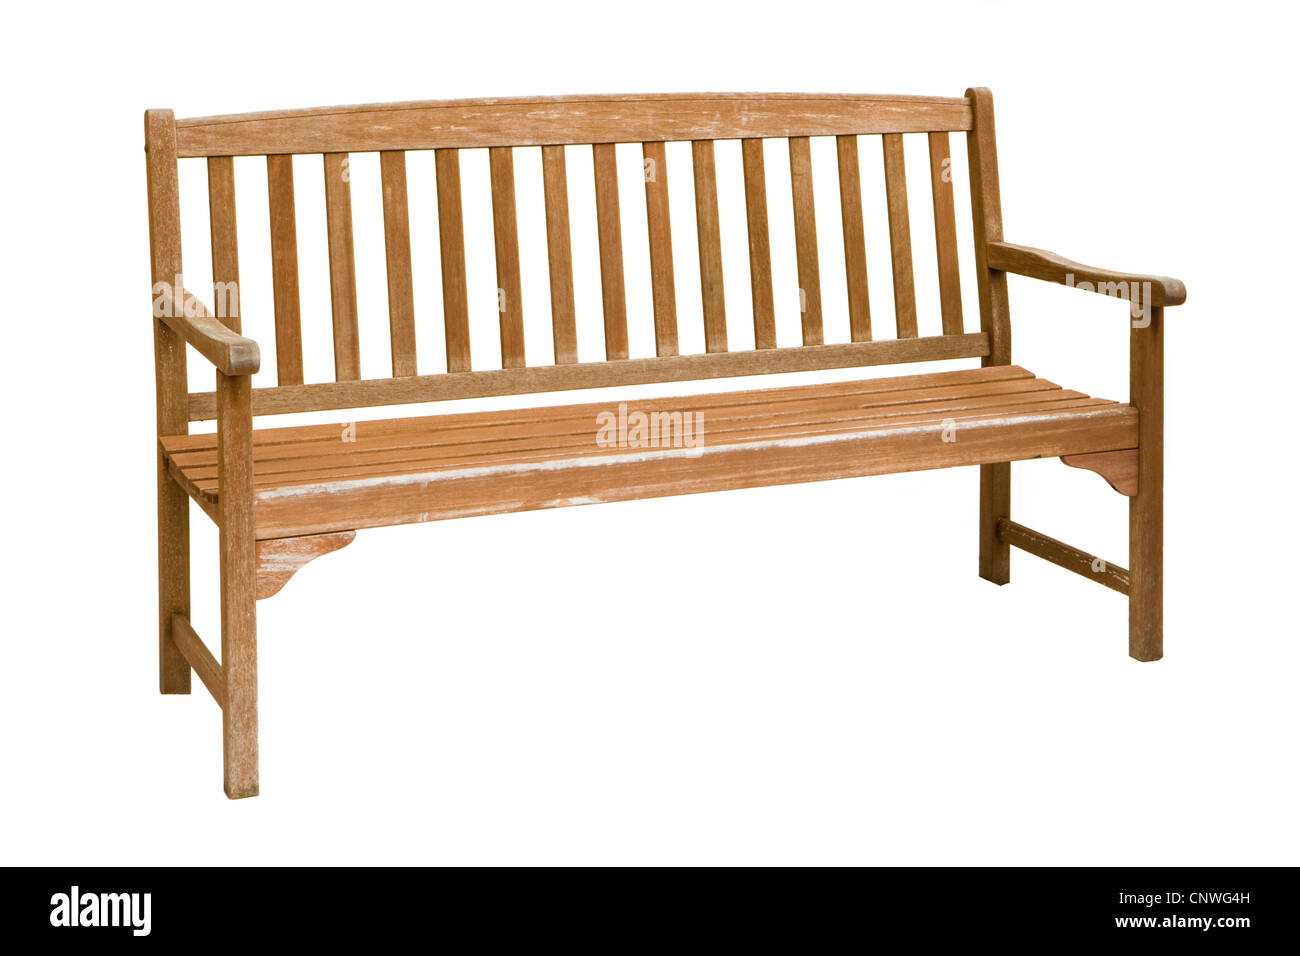 Garden bench. Weathered. - Stock Image